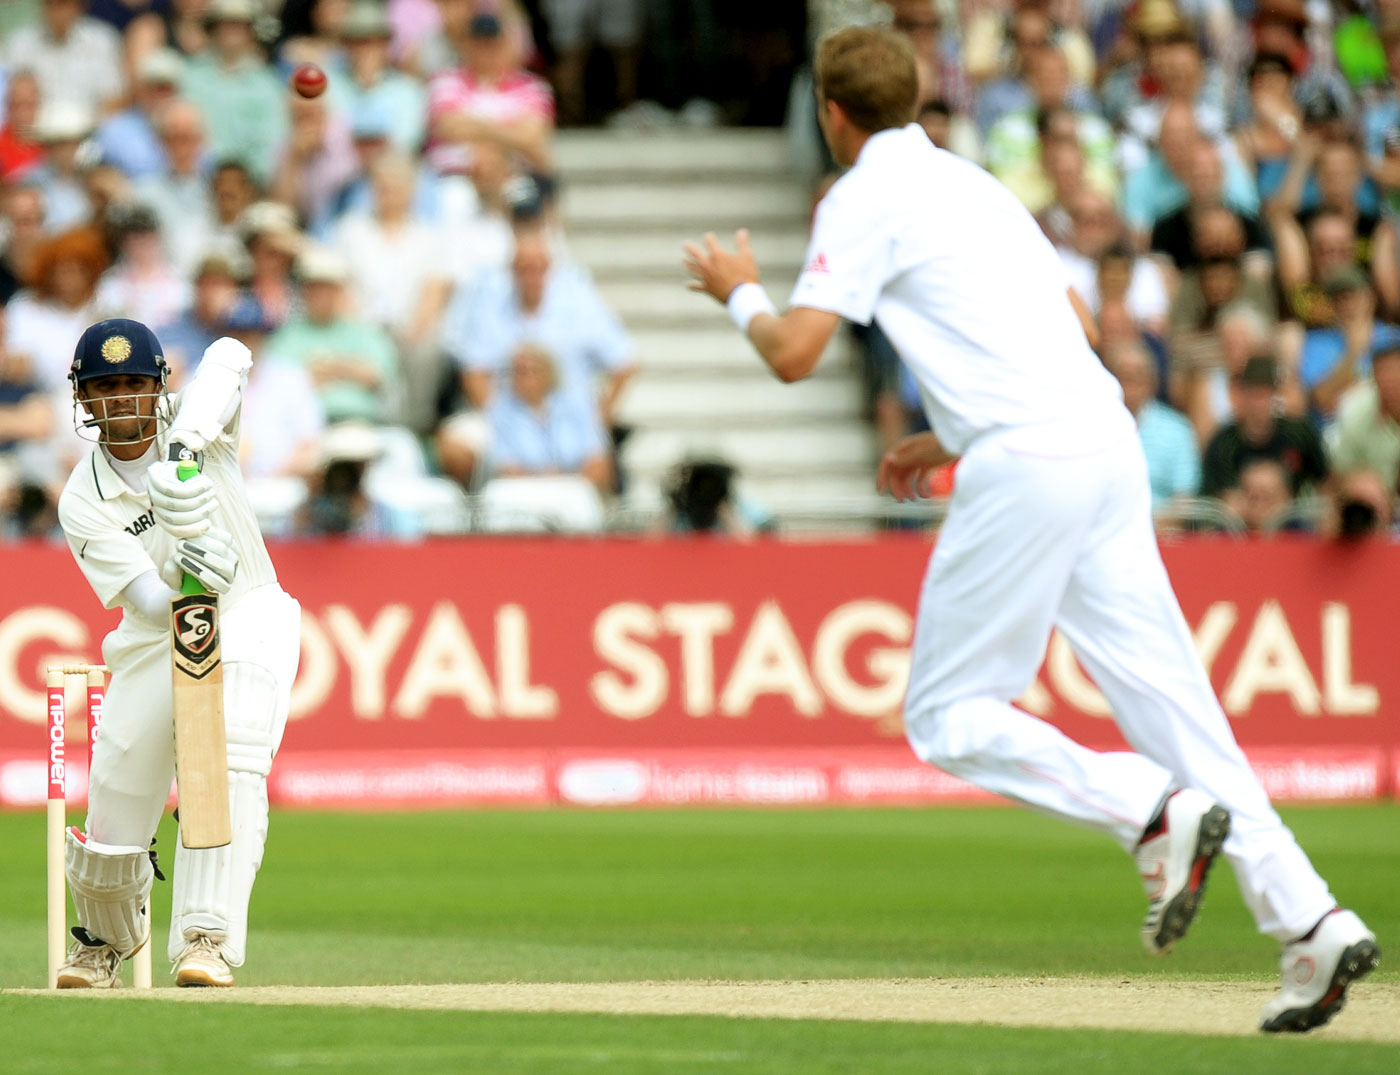 According to Tyson, unlike most Indian batsmen, Rahul Dravid had the initial backwards movement that helped him on bouncy pitches